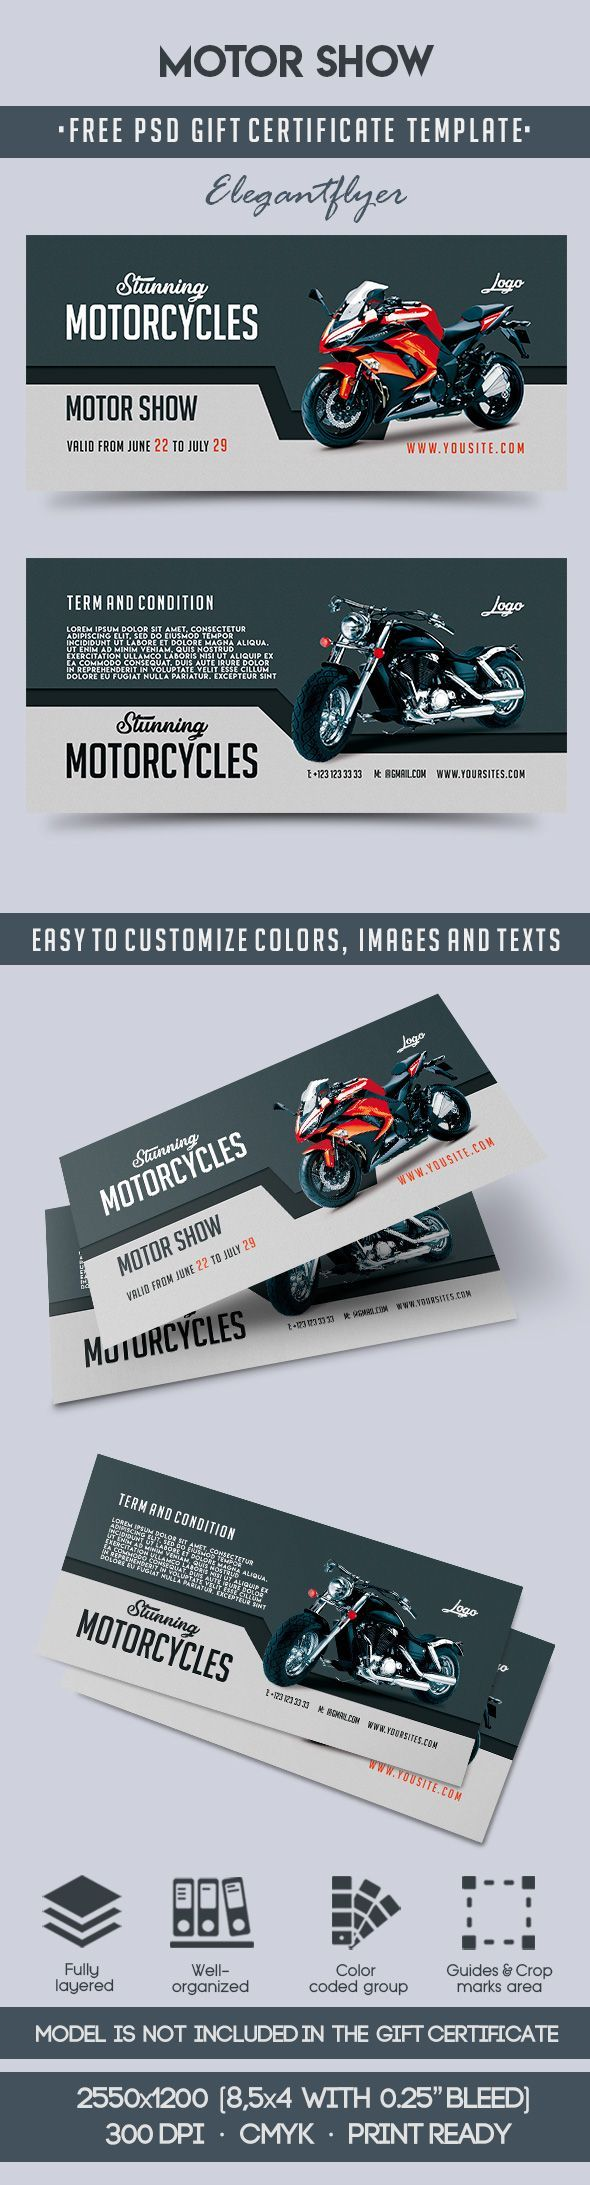 motor show free gift certificate psd template